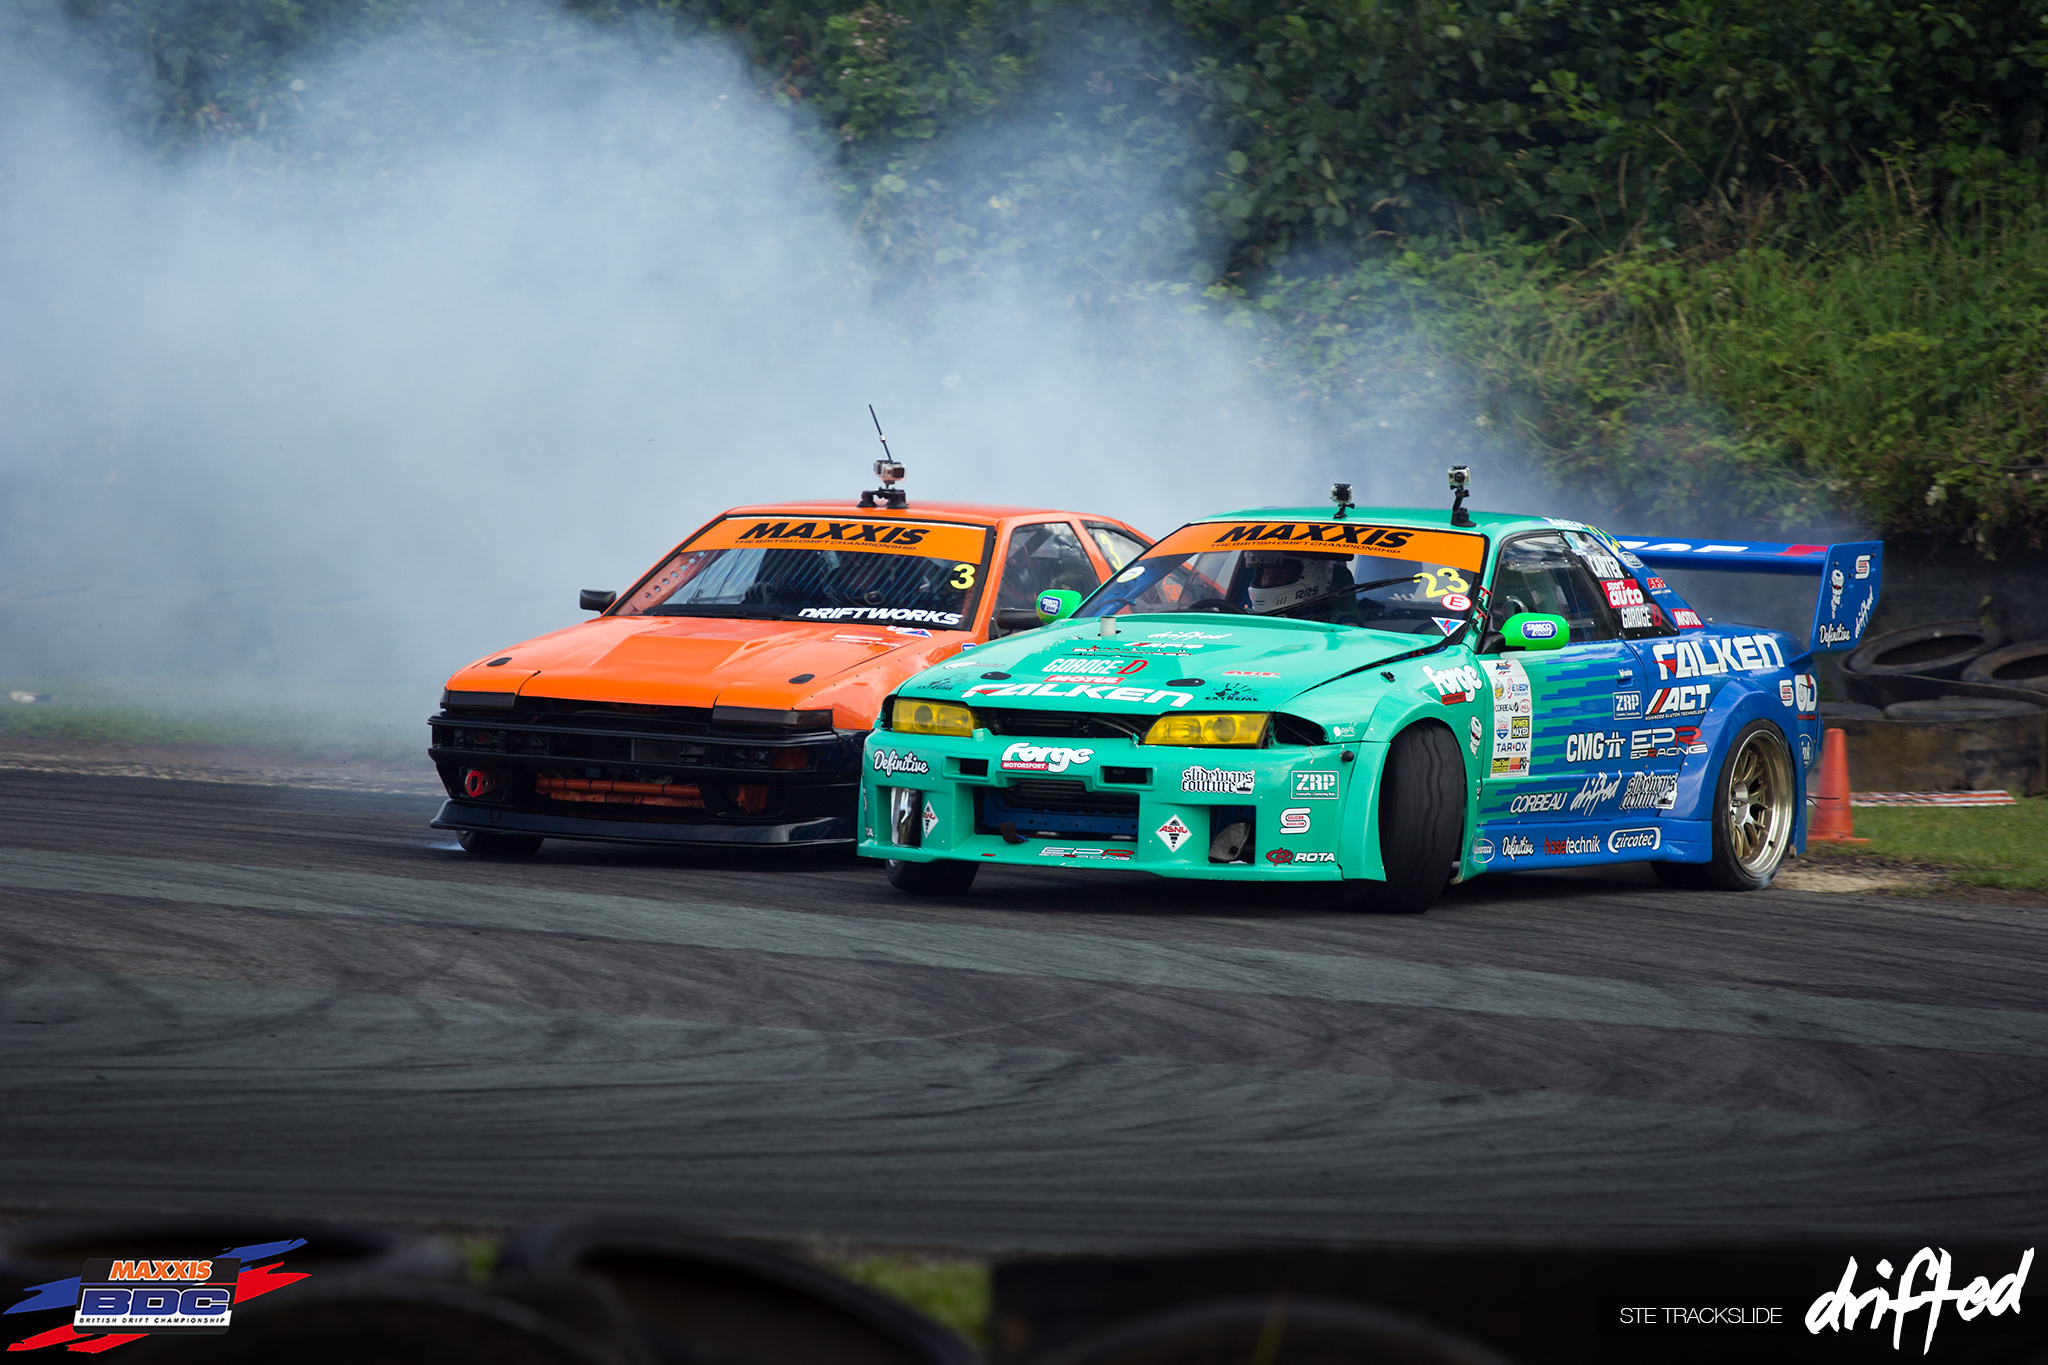 BDC RD3 2014 by Ste Trackslide (99)